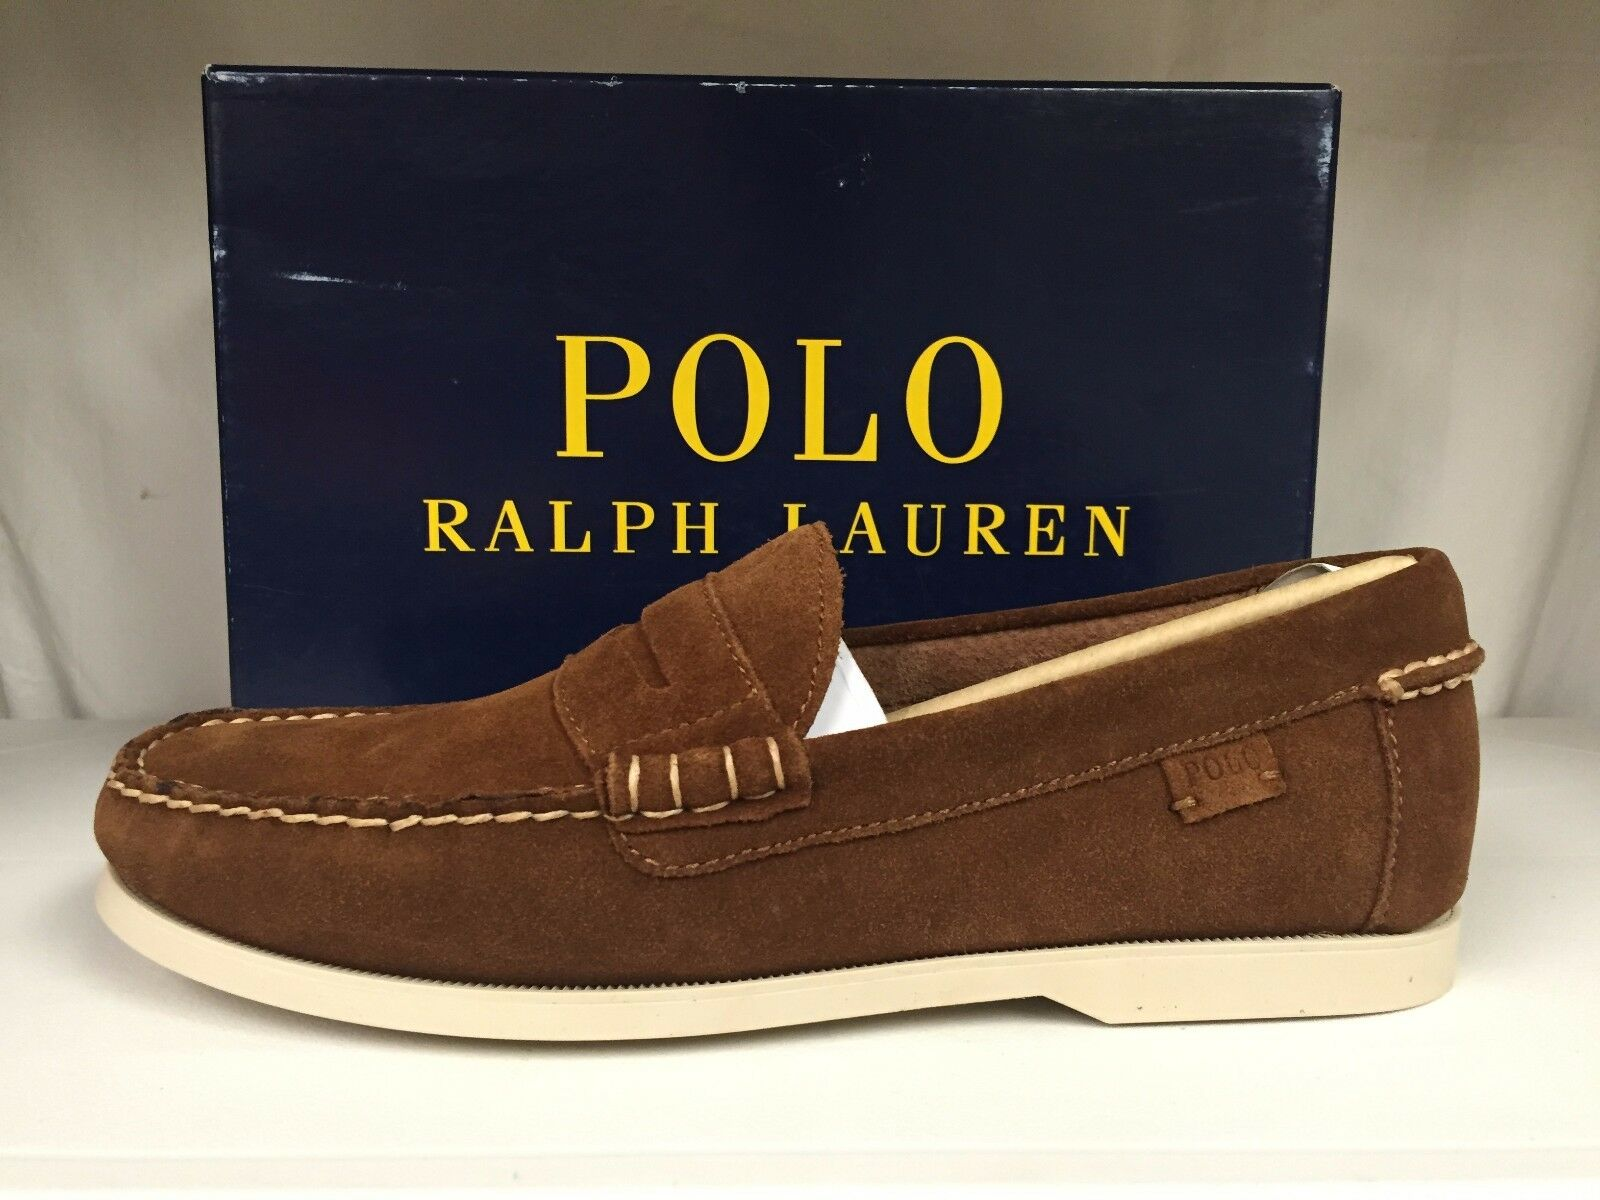 Polo Ralph Lauren Bjorn Men's Penny Loafers Driver shoes Slip Ons Moccasins